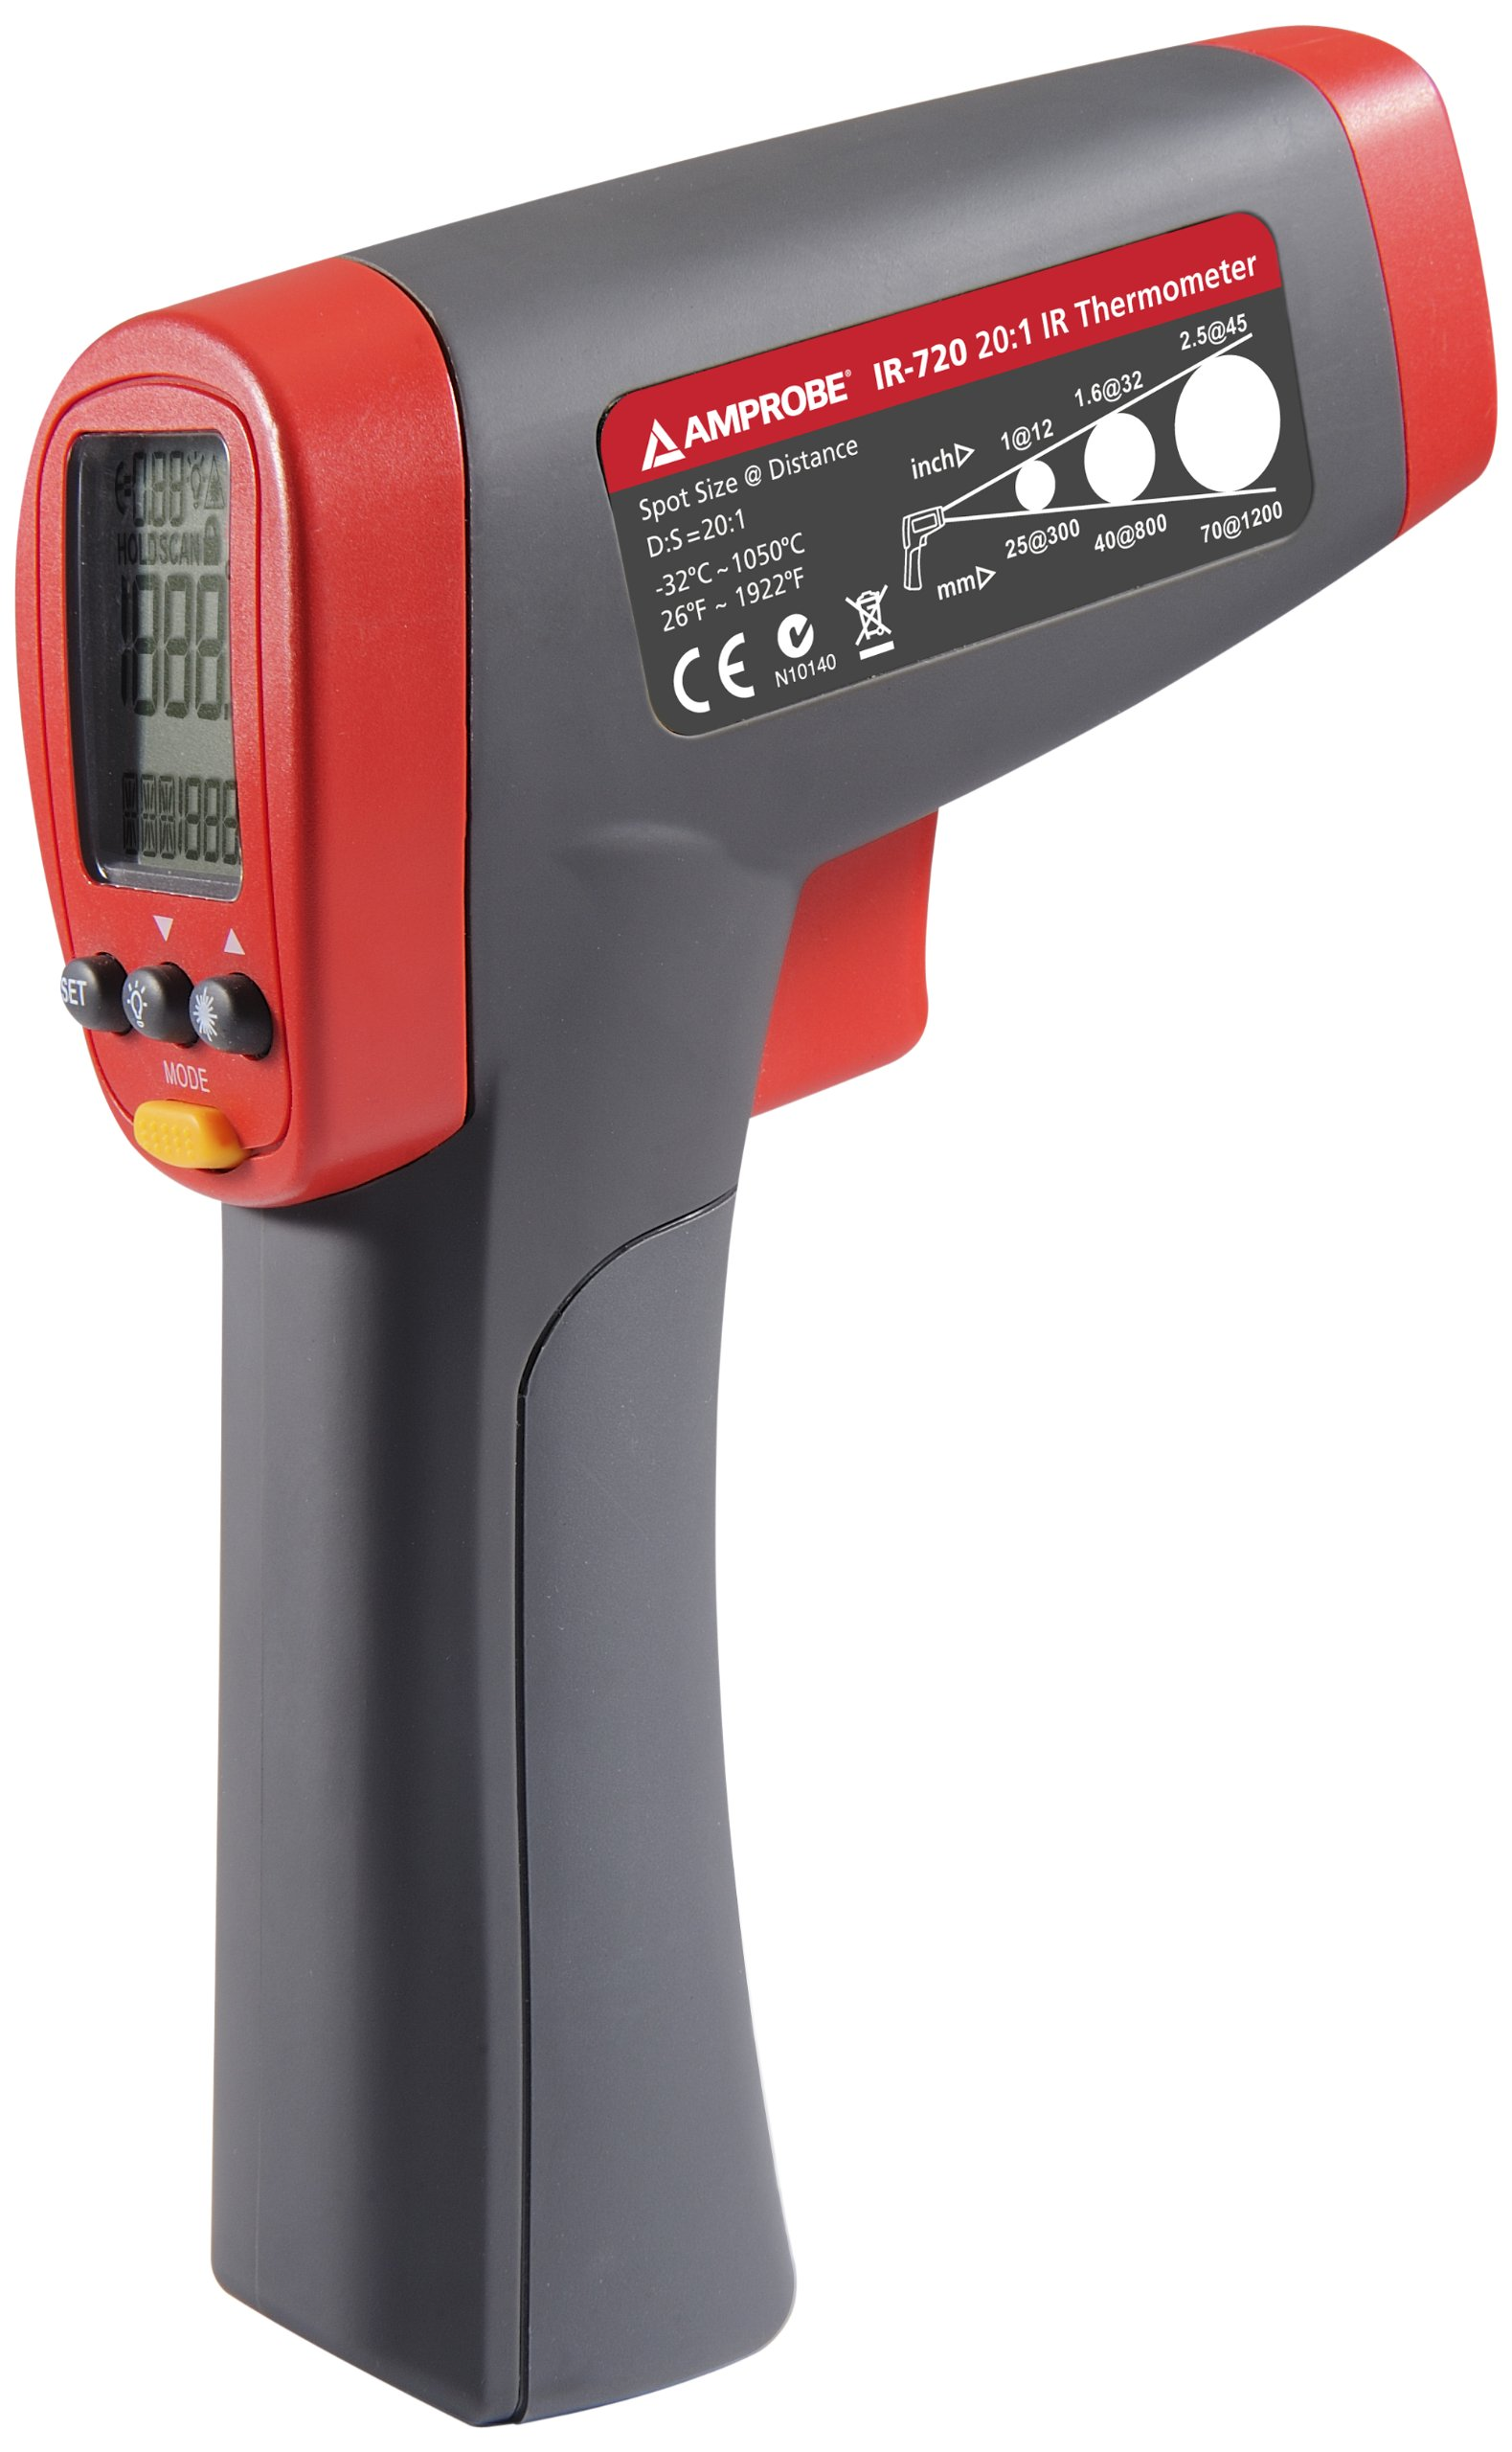 Amprobe IR-720 Infrared Thermometer with 20:1 Spot Ratio